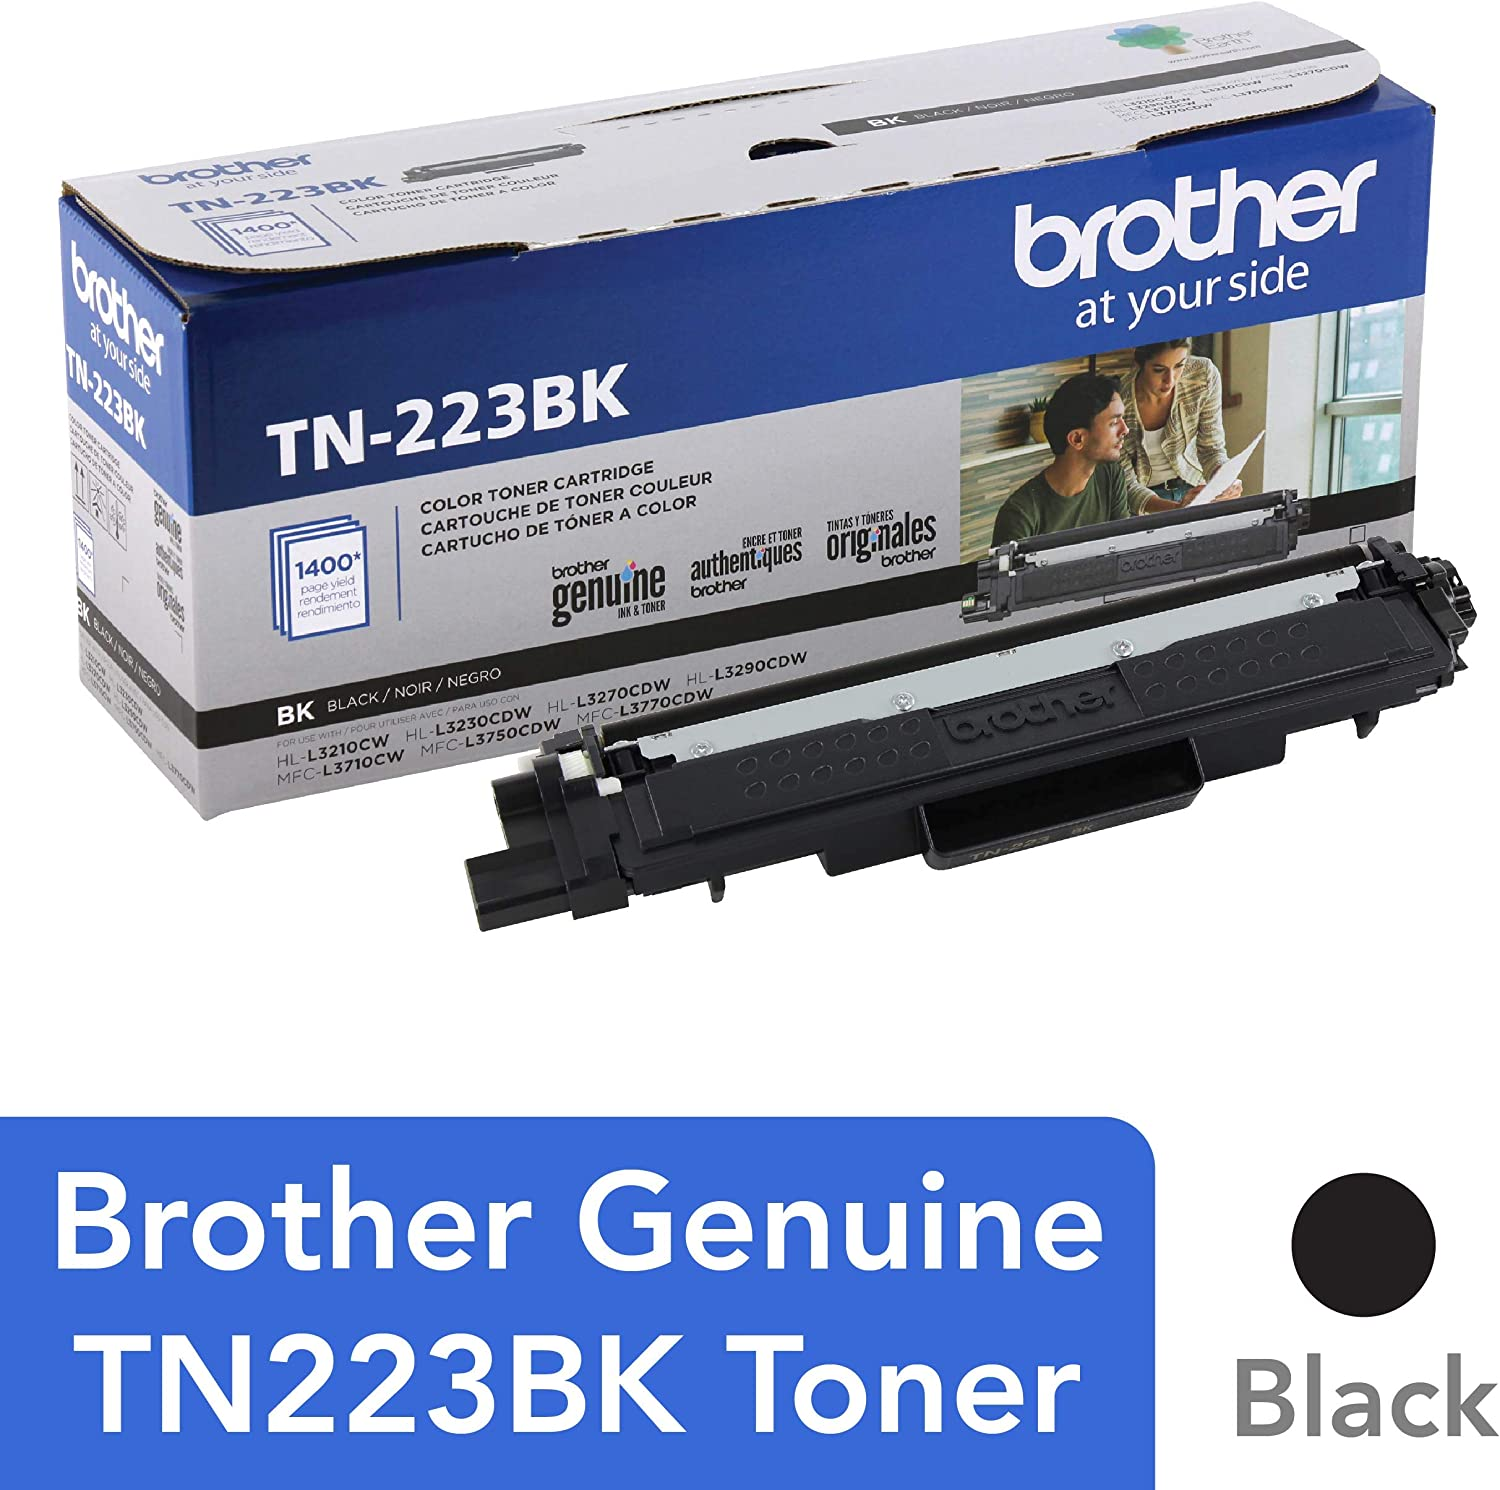 Brother Genuine TN223BK, Standard Yield Toner Cartridge, Replacement Black Toner, Page Yield Up to 1,400 Pages, TN223, Amazon Dash Replenishment Cartridge